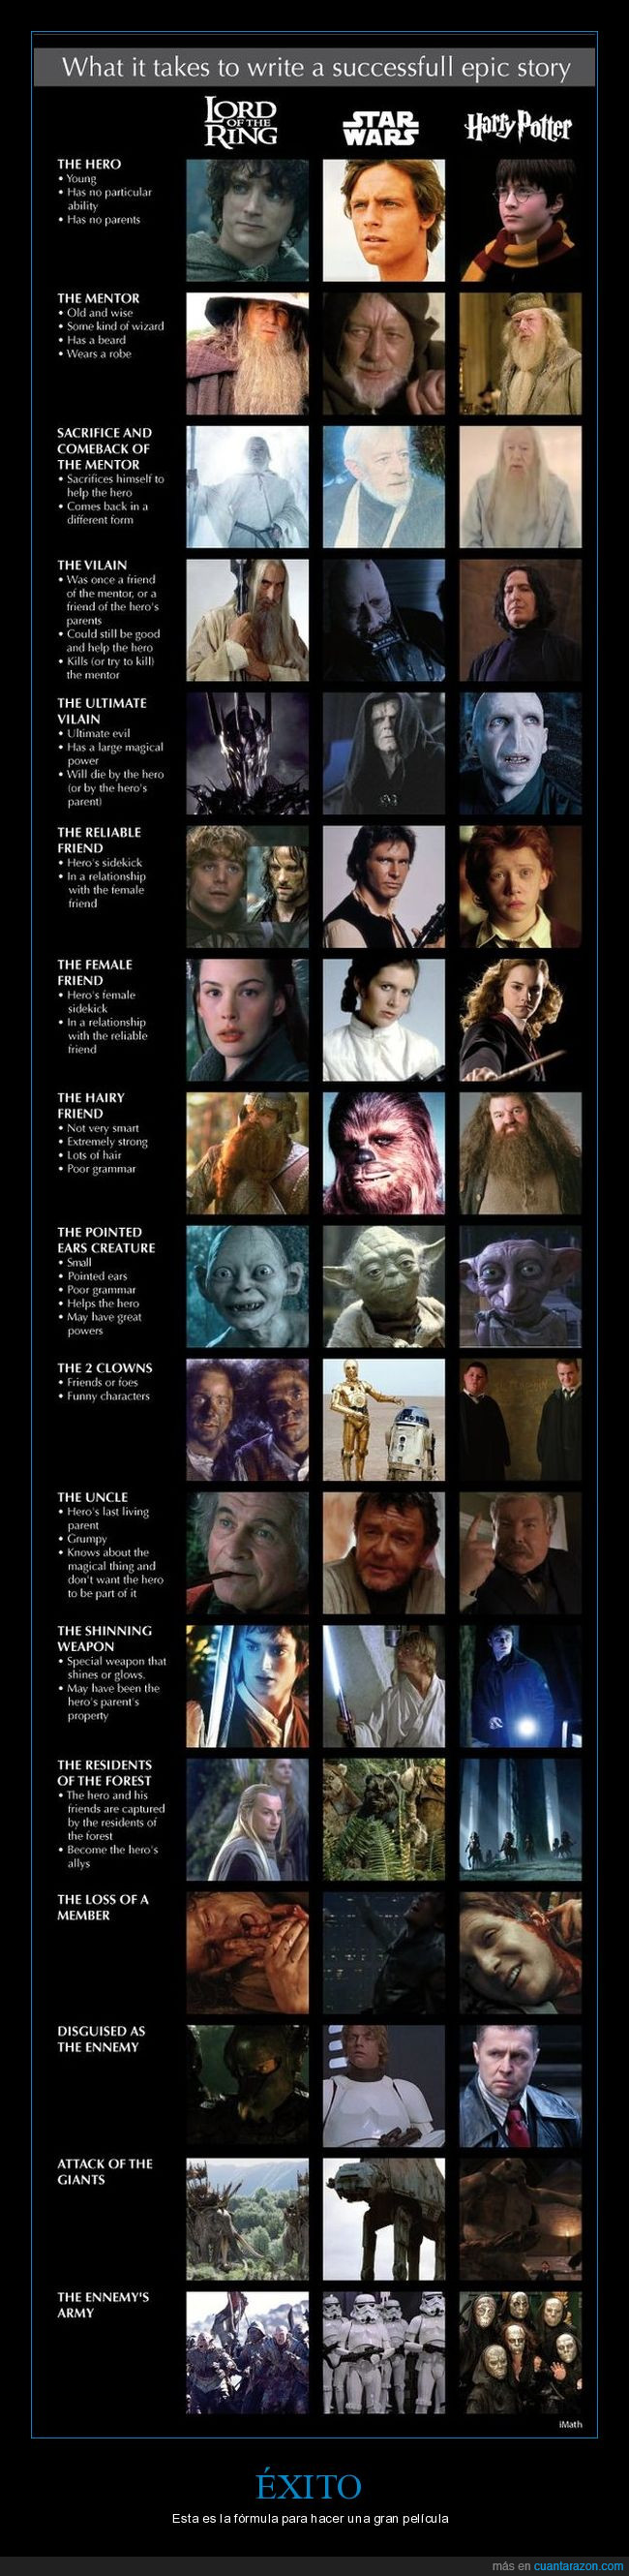 Harry potter,Parecidos,Señor de los anillos,Similitudes,Star wars